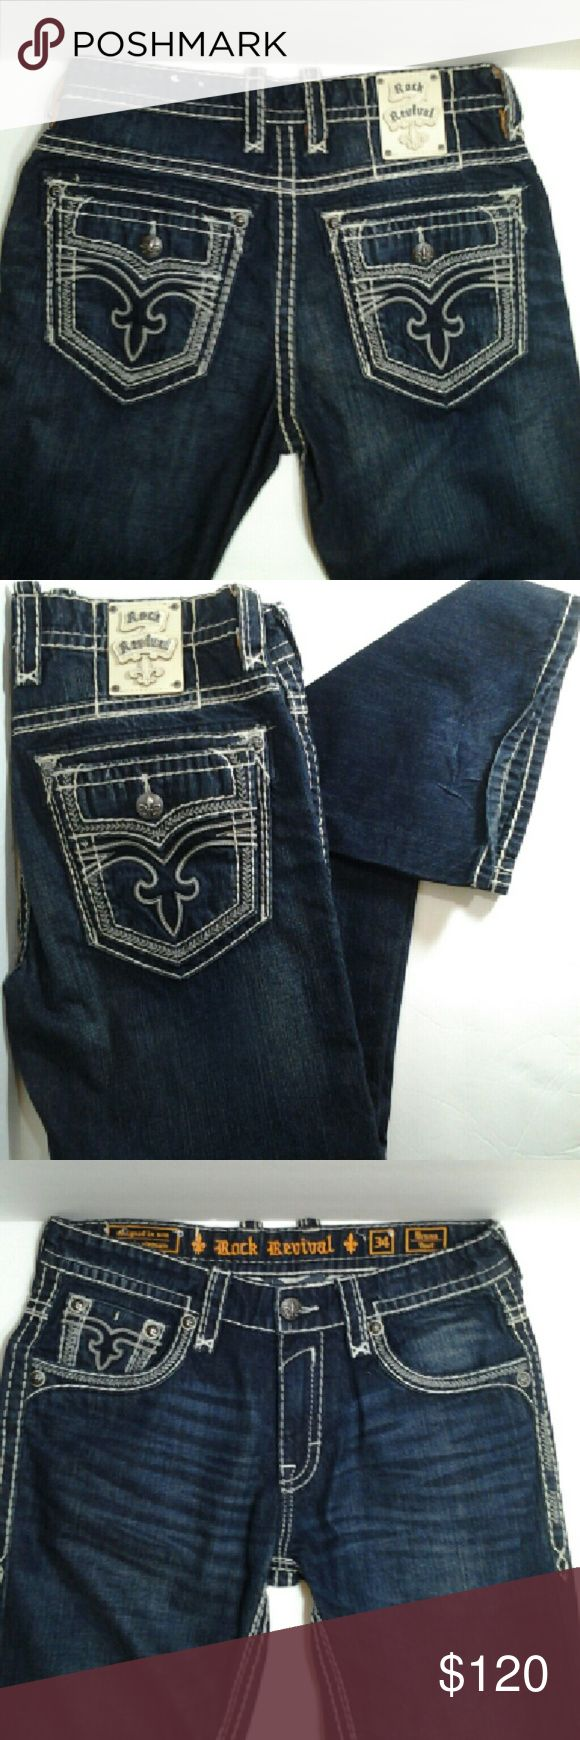 Men Rock Revival Bruno Jeans Men Rock Revival Bruno Jeans designed in USA.... Relaxed fit jean... stretch fabric embroidered faux flap on back pockets ( NWOT ) NEW NEVER WORN!!!  Priced to Sale... Will Except Fair & Reasonable Offers. .. Savings of $39... Rock Revival Jeans Relaxed